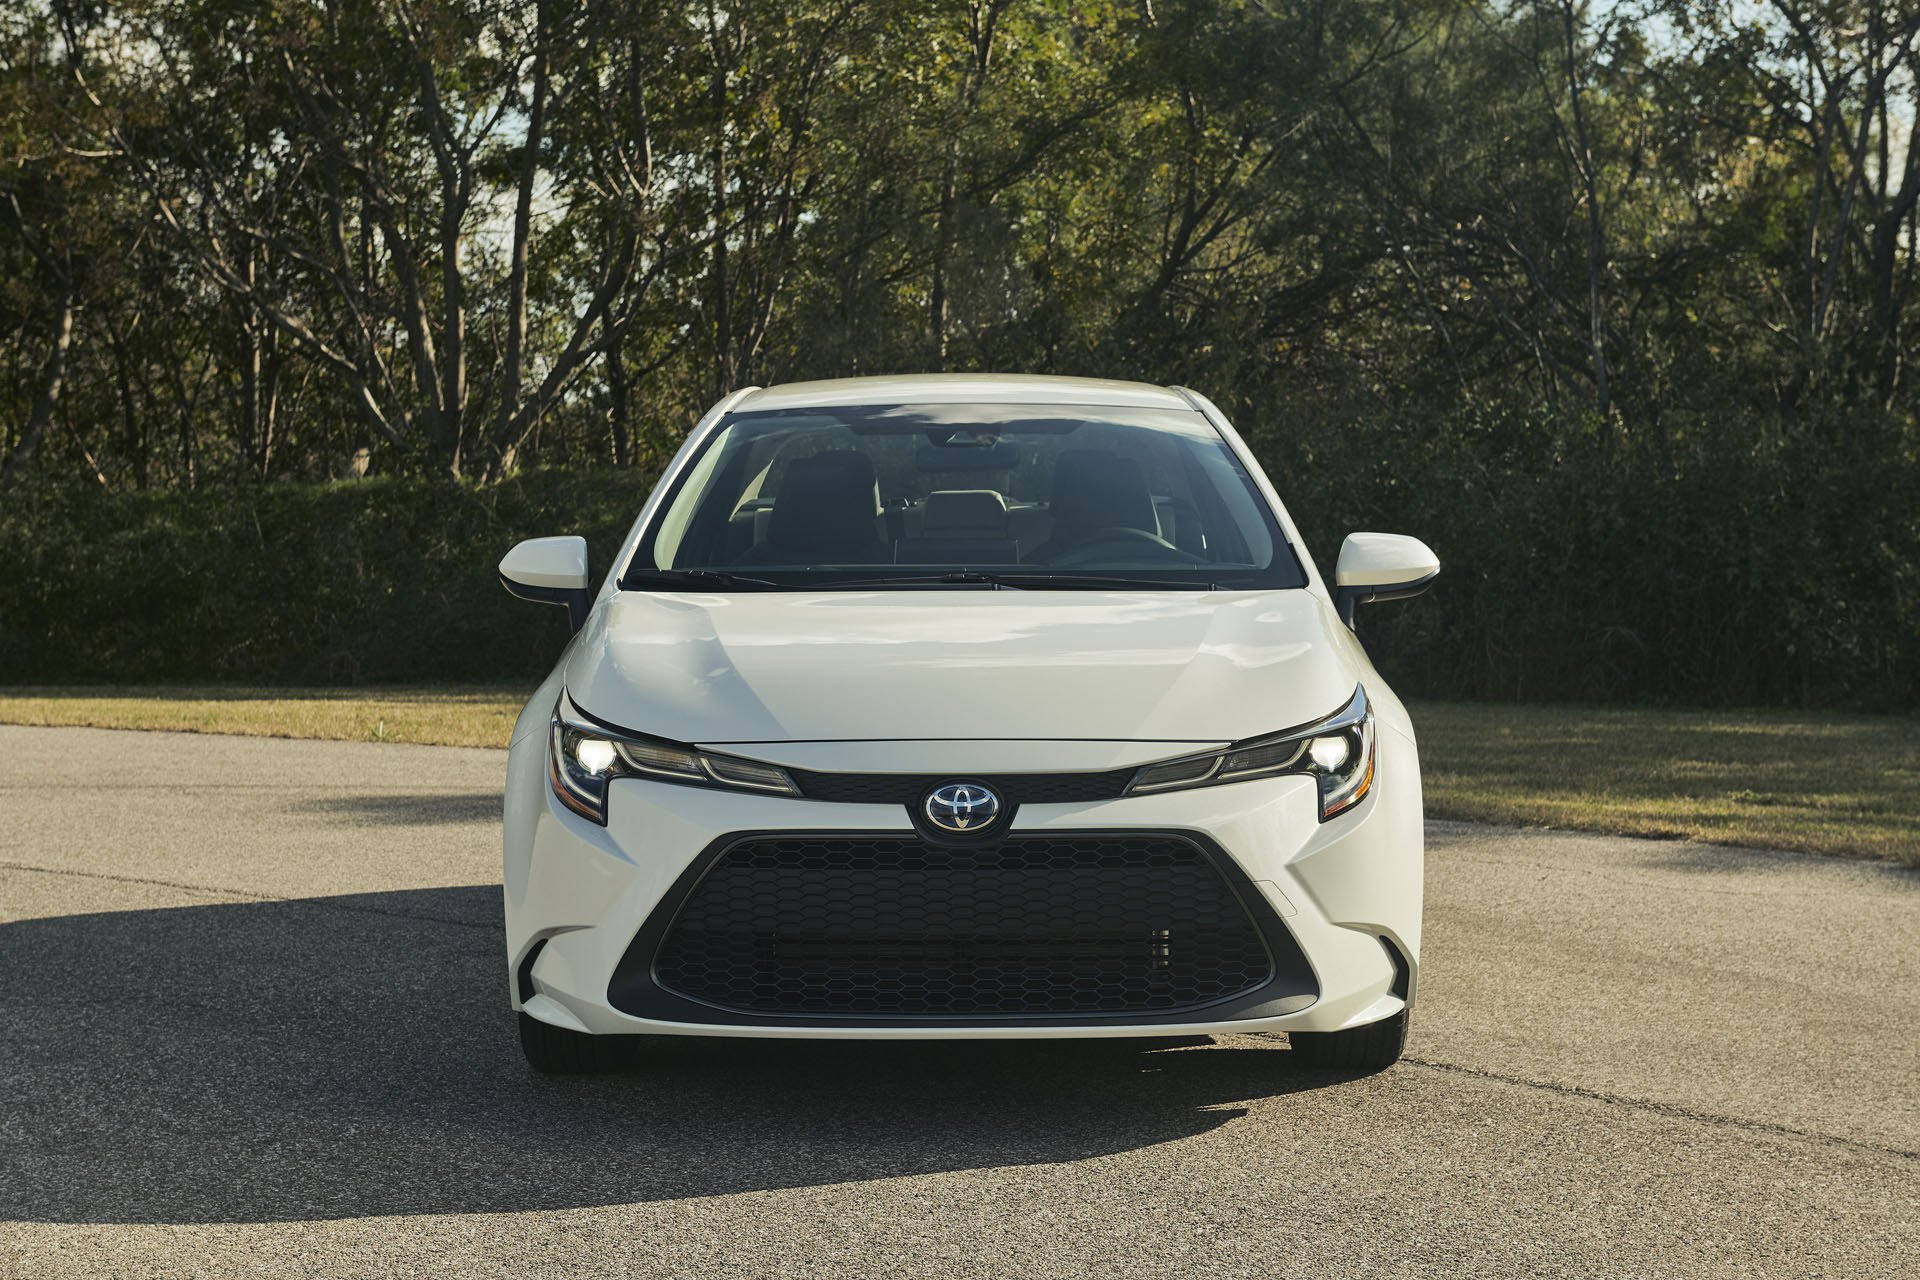 Toyota Corolla 2020 Hybrid unveiled for the US market - News